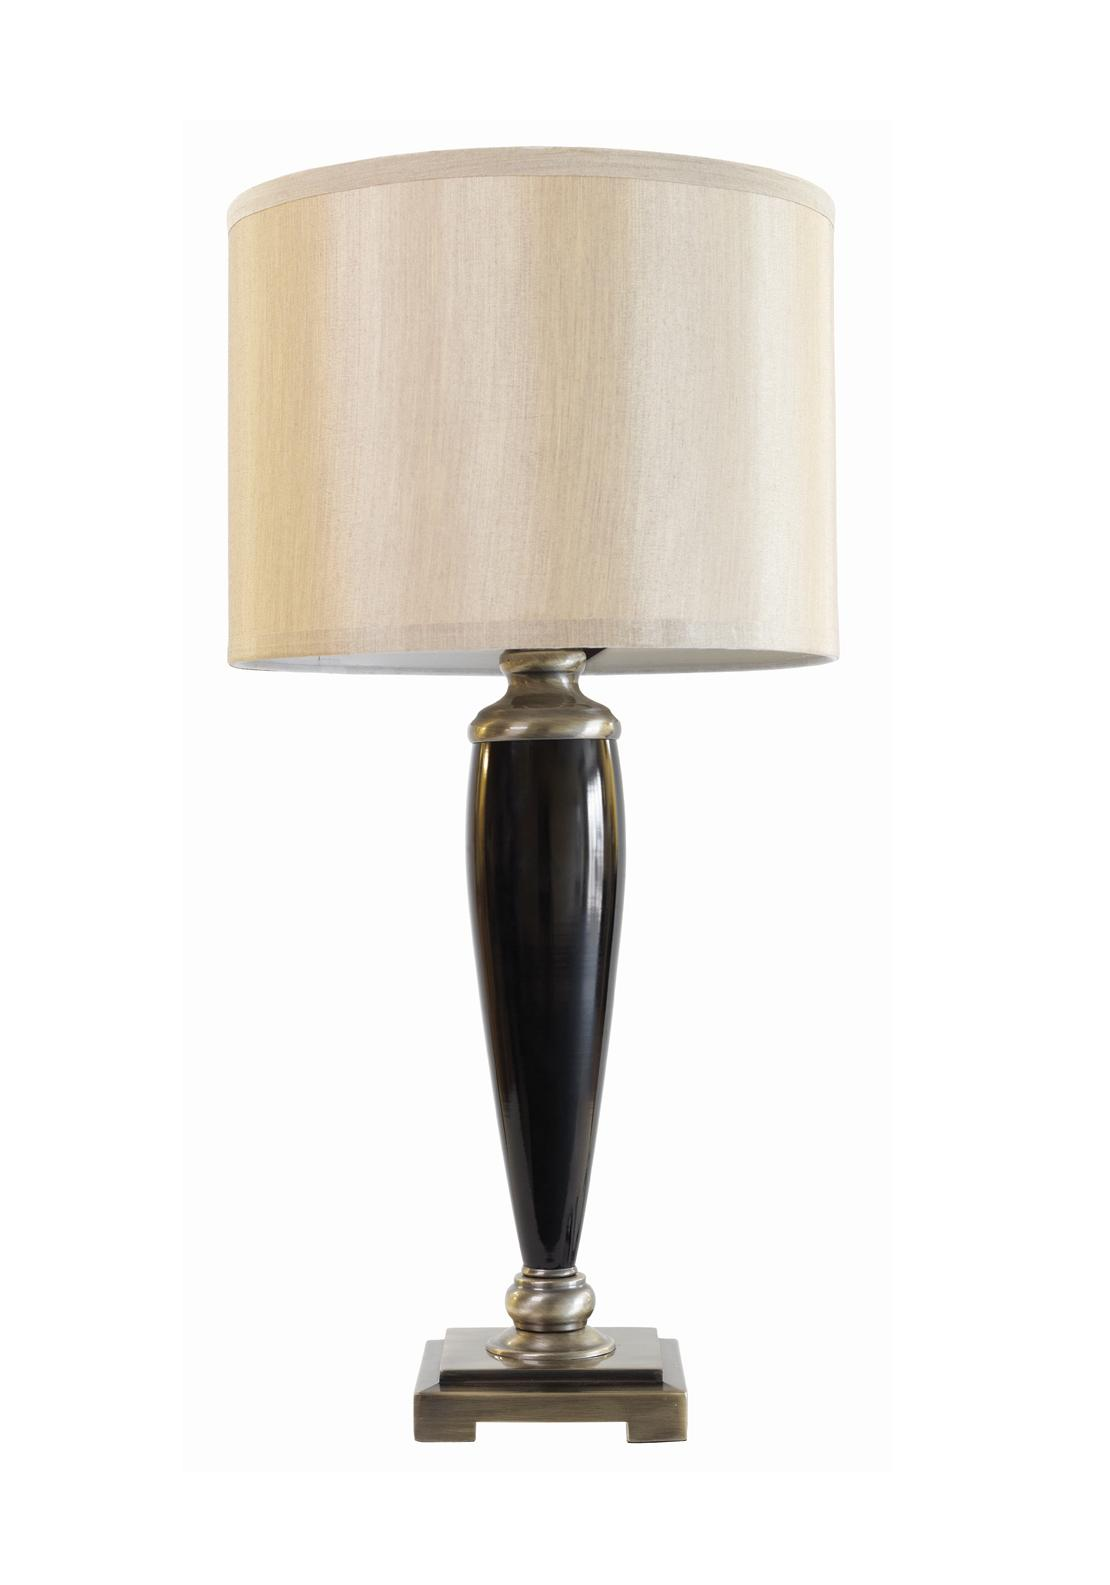 Mindy Brownes Naomi Lamps, Set of 2